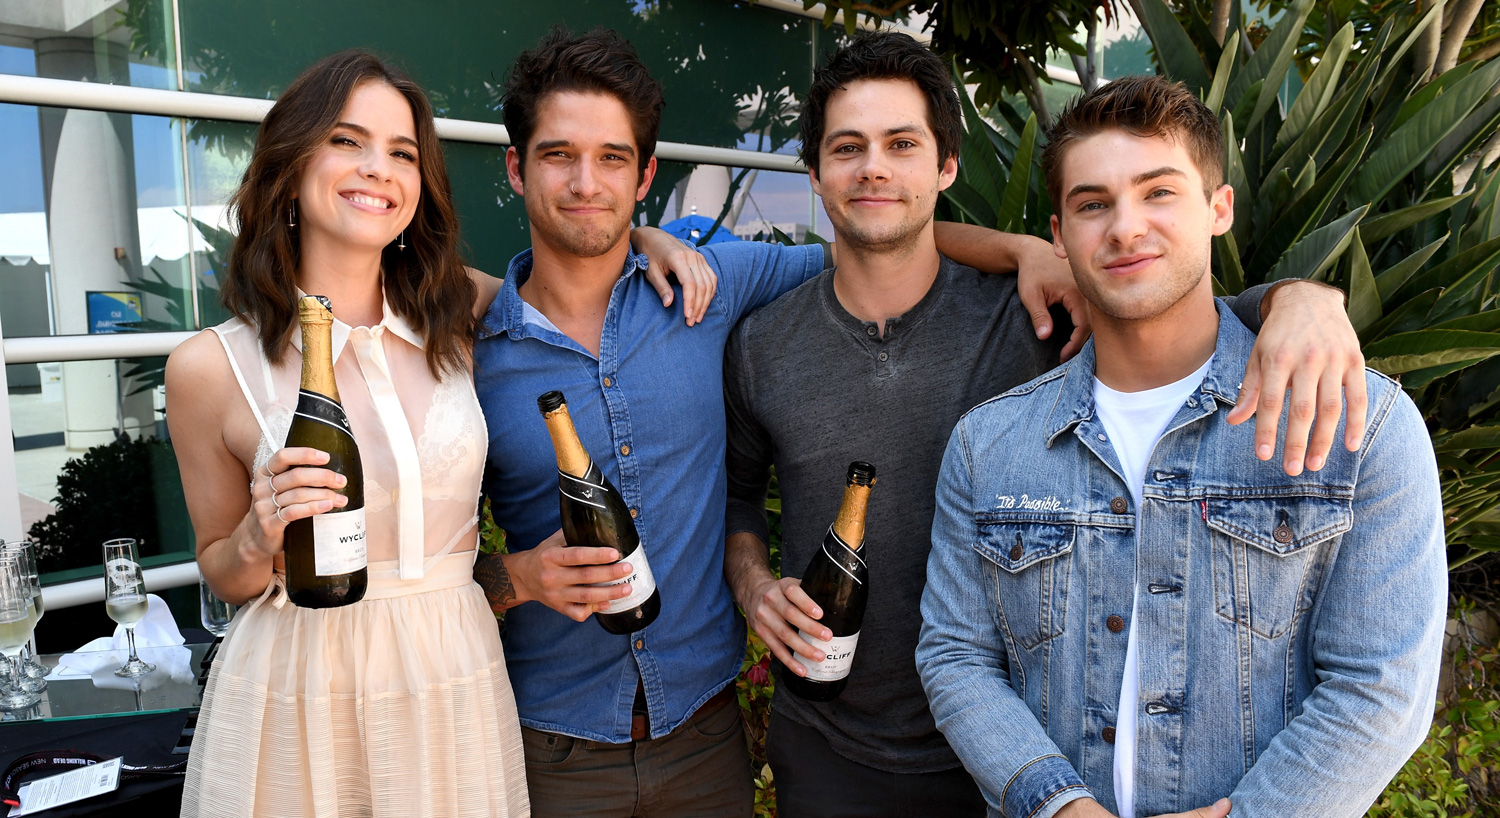 Dylan obrien reunites with teen wolf cast at comic con 2017 2017 comic con charlie carver cody christian dylan obrien dylan sprayberry khylin rhambo linden ashby melissa ponzio teen wolf tyler posey just kristyandbryce Image collections